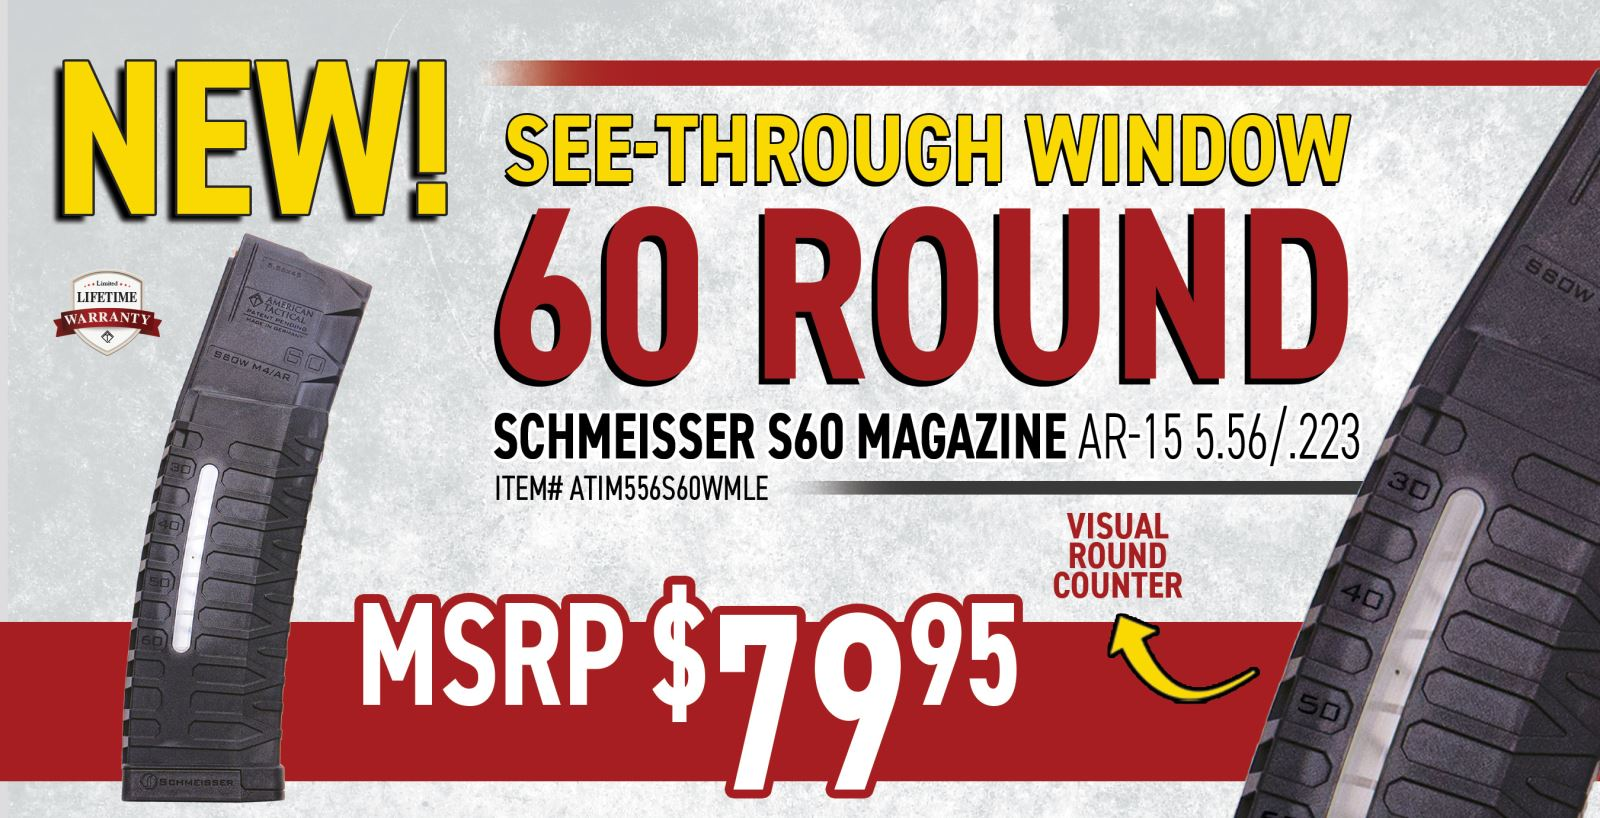 SCHMEISSER S60 WINDOW MAGAZINE